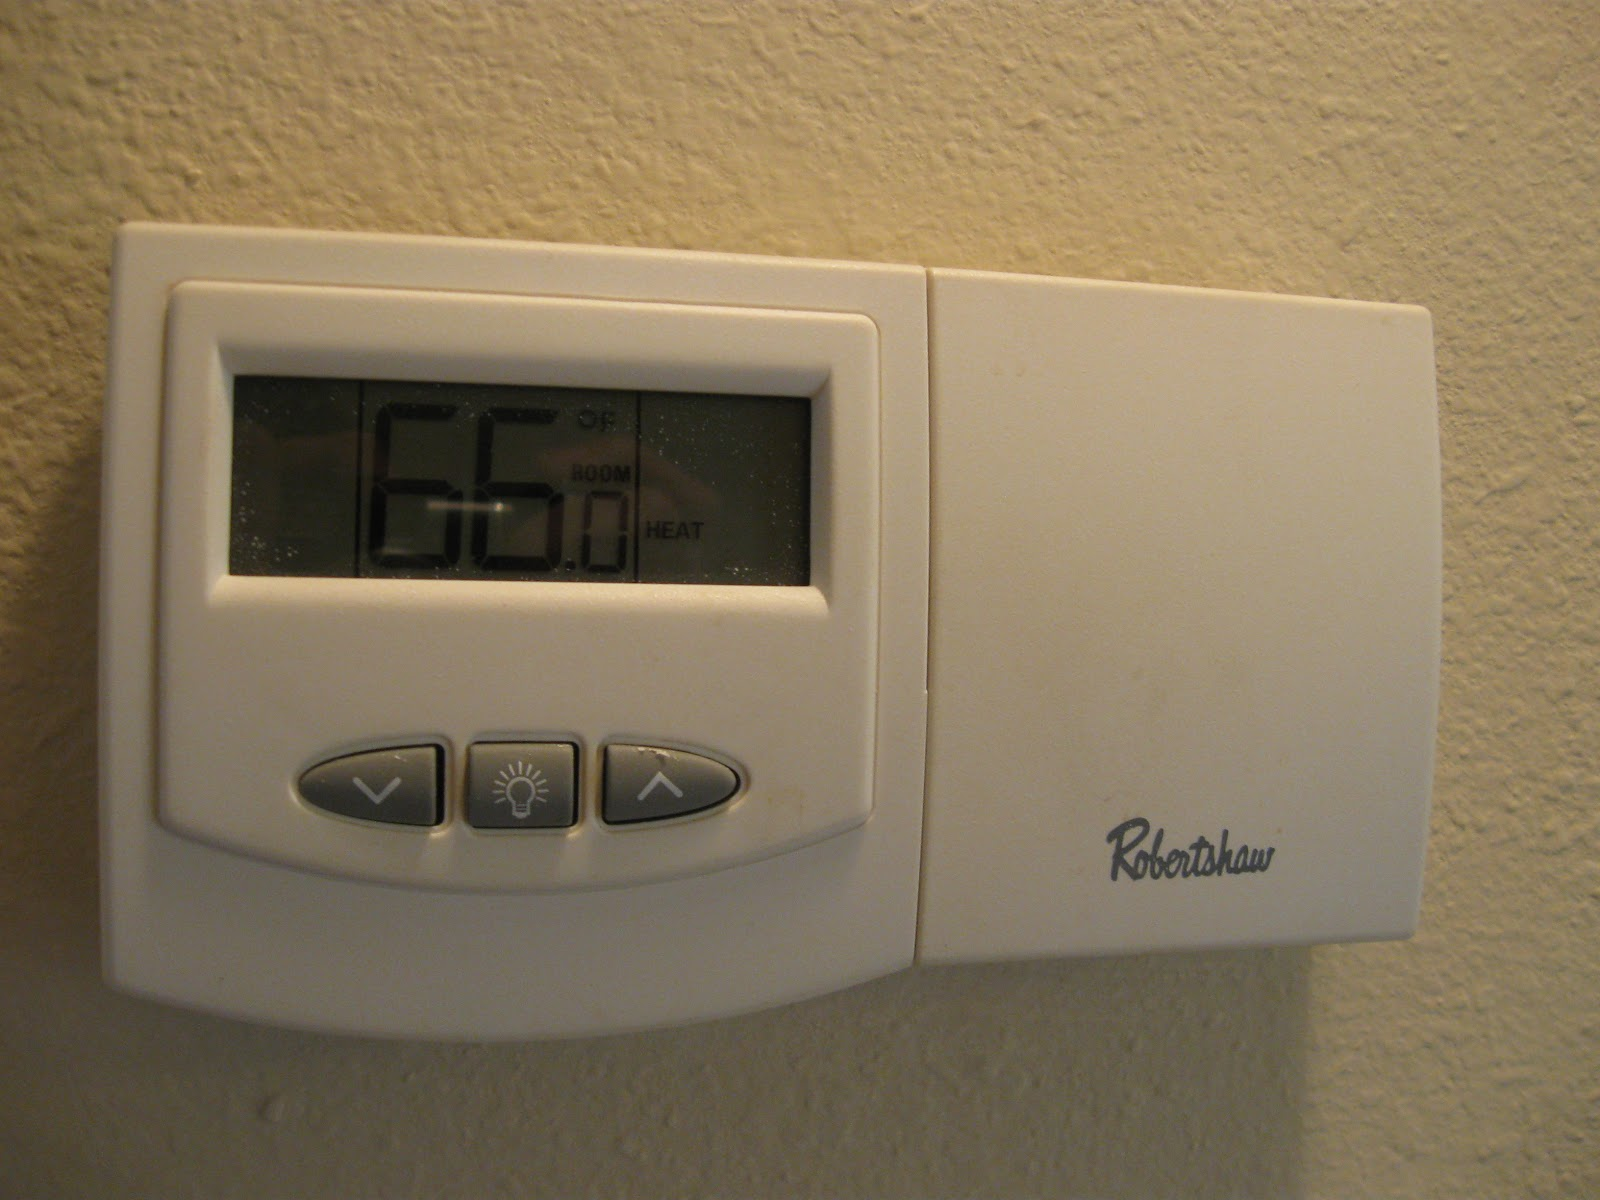 Robertshaw_Non-Programmable_Digital_Thermostat.JPG